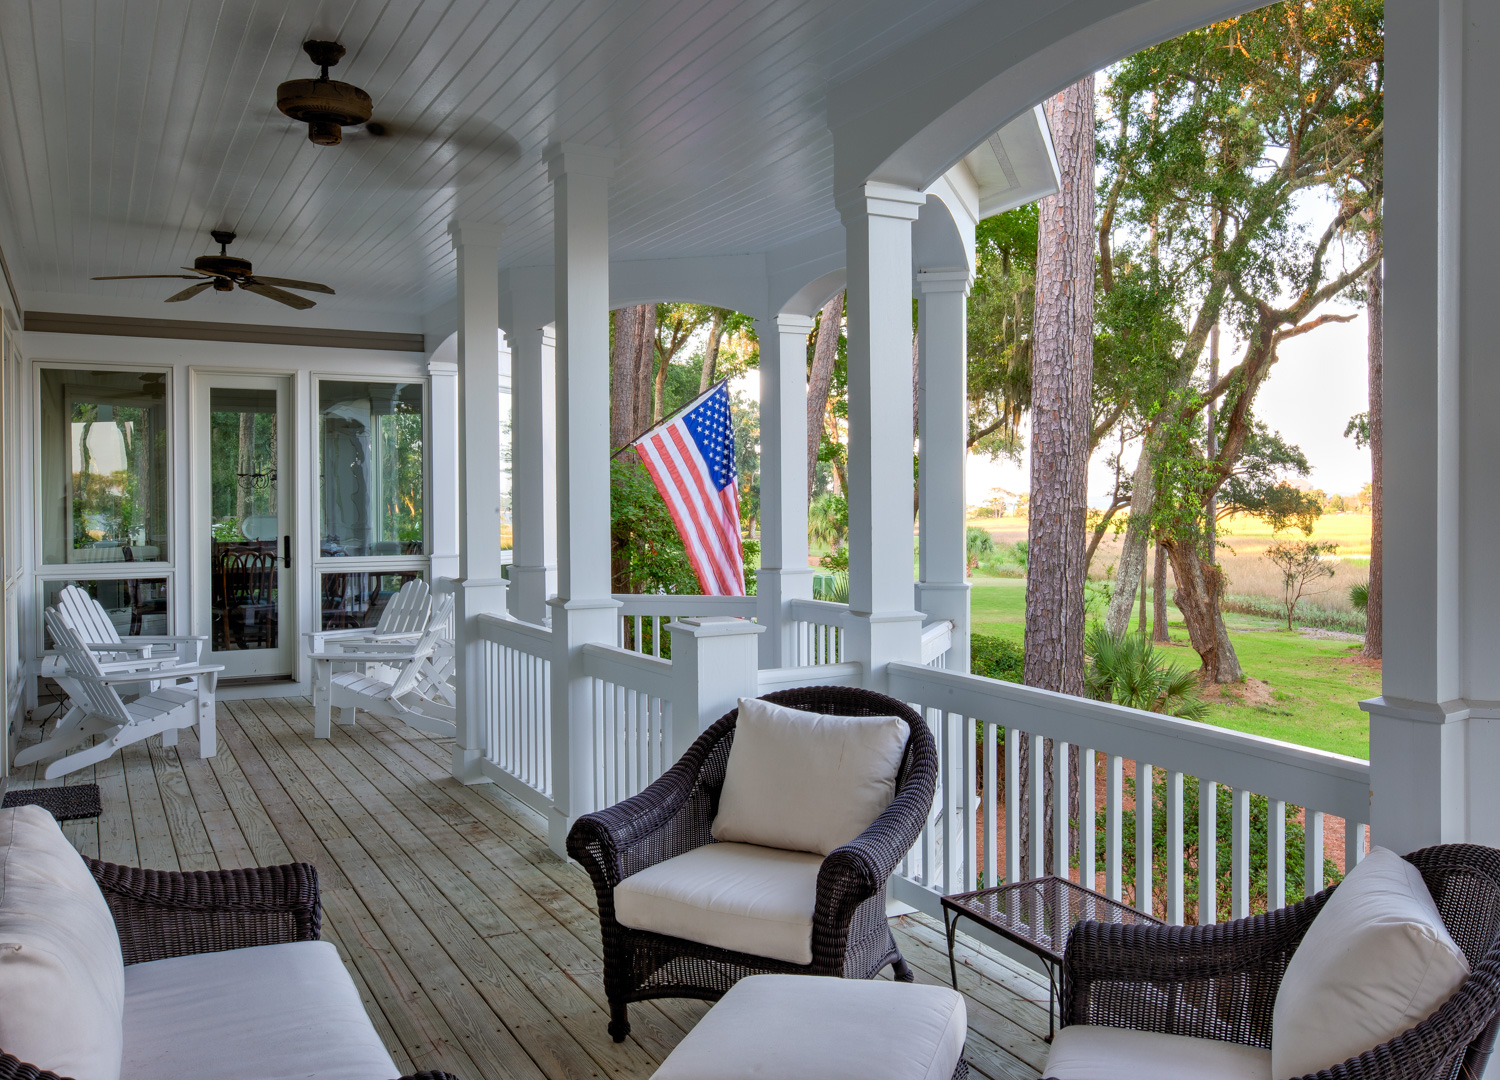 070 porch-sitting-area-flag-PS2.jpg